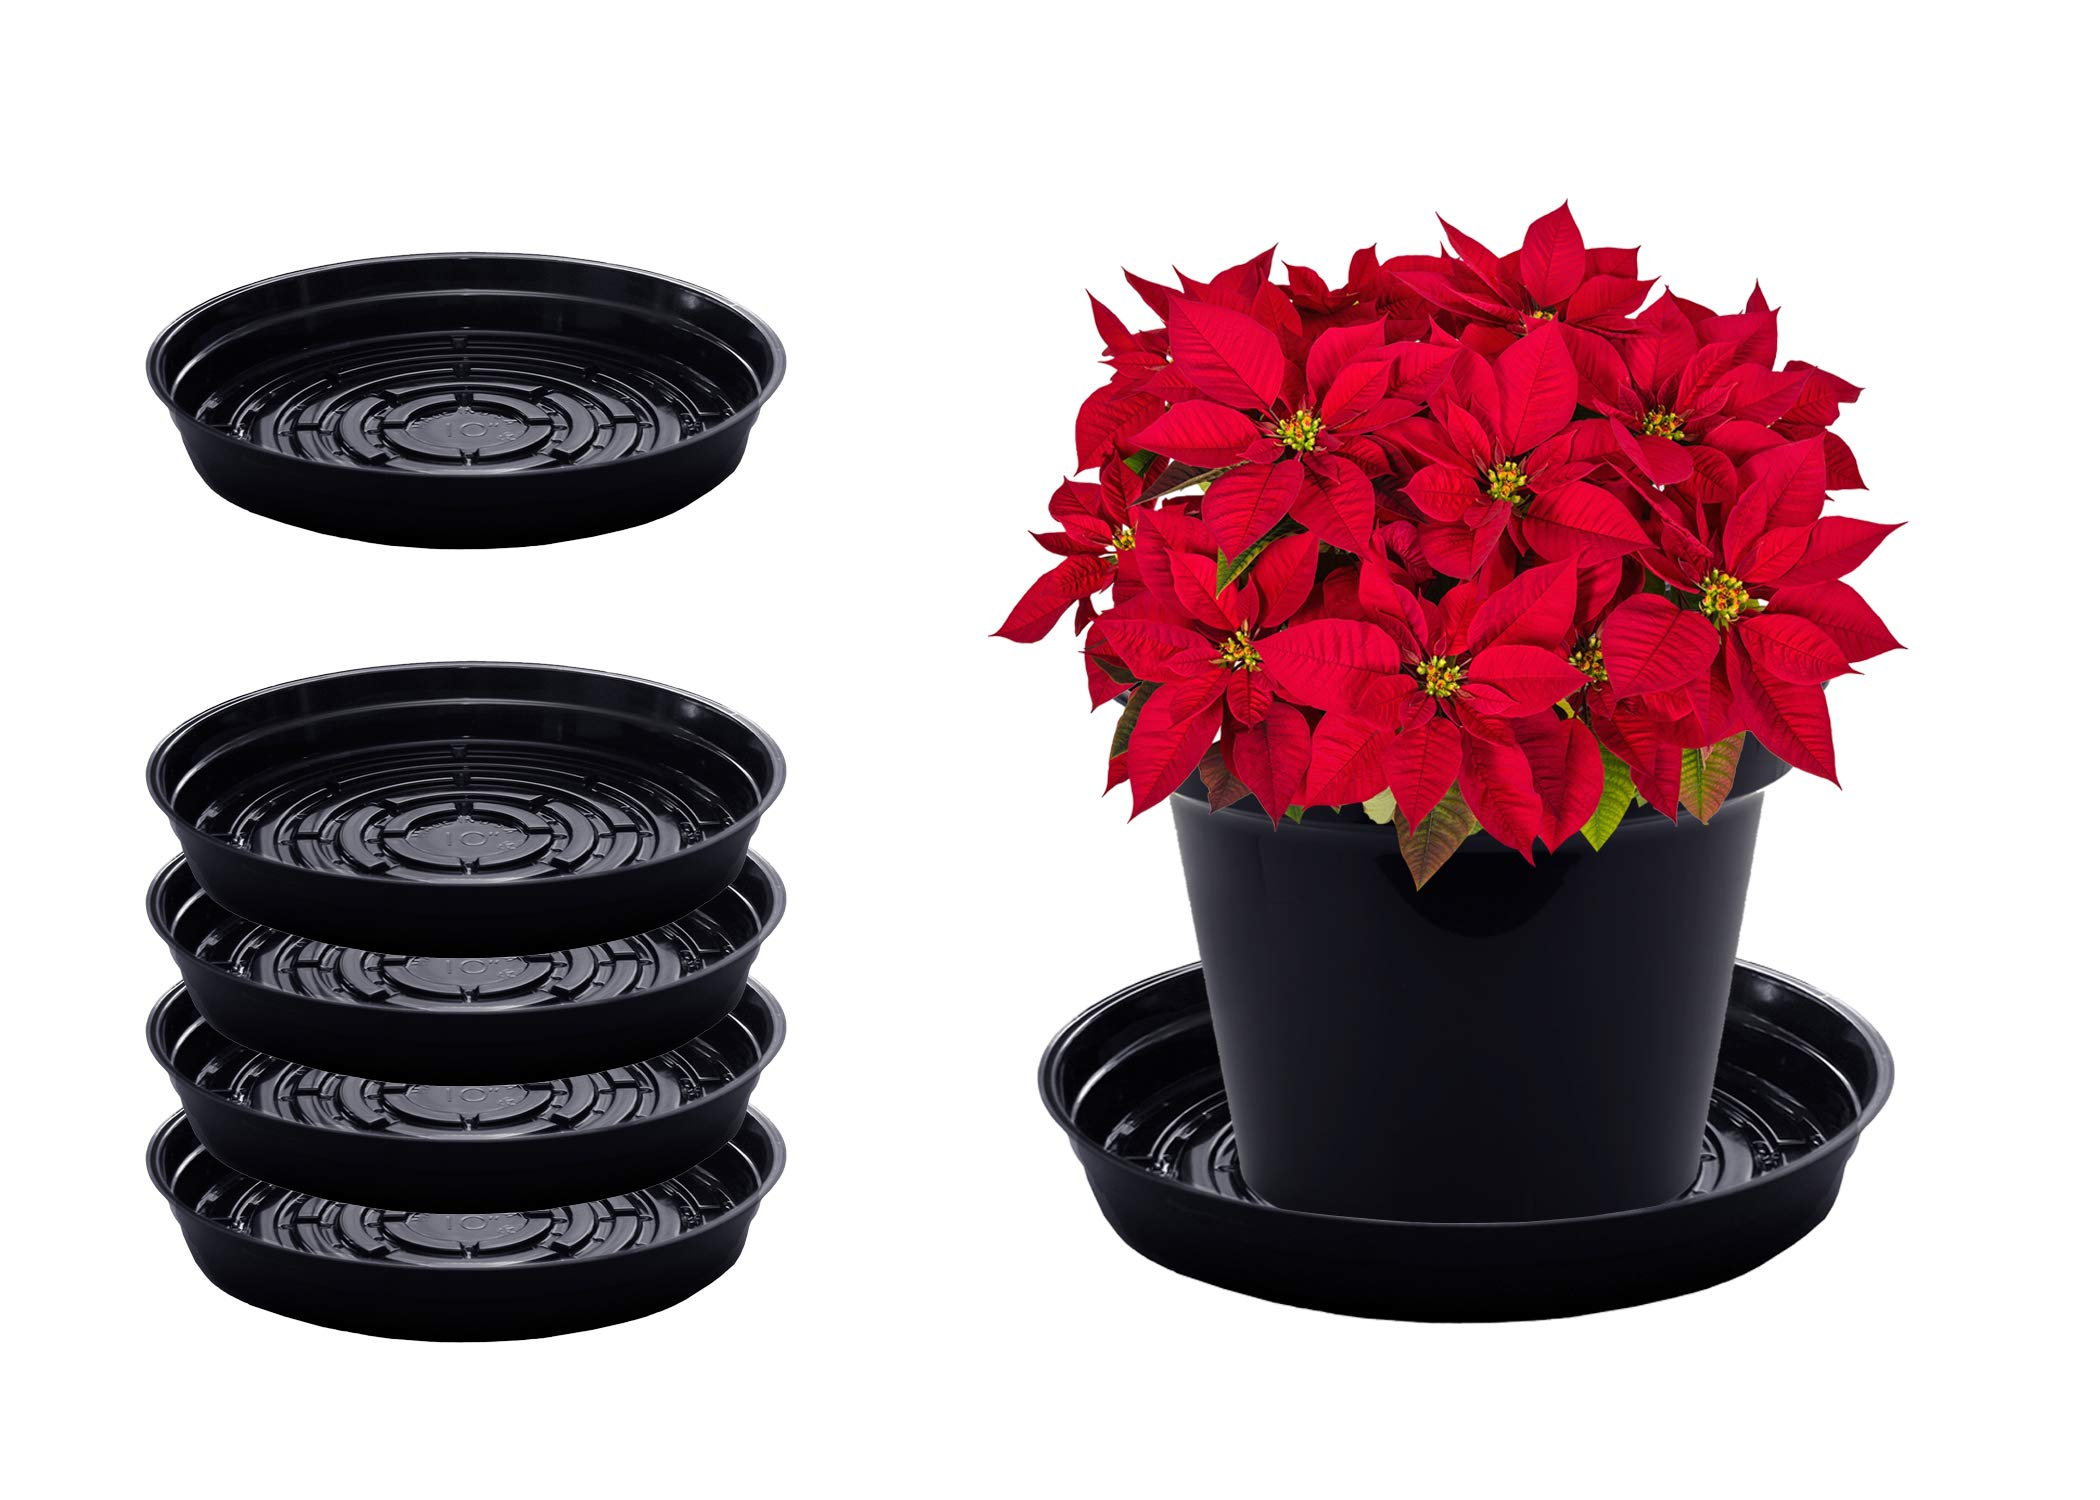 Curtis Wagner Plastics Plant Tray Drip Pan Saucers (5-Pack) - Black, Round (Diameter = 21'' top, 19.25'' Bottom, 3.25'' Depth) Thin Plastic for Indoor or Garden - Clear, Black & Terracotta Floor Savers by Curtis Wagner Plastics Corp.